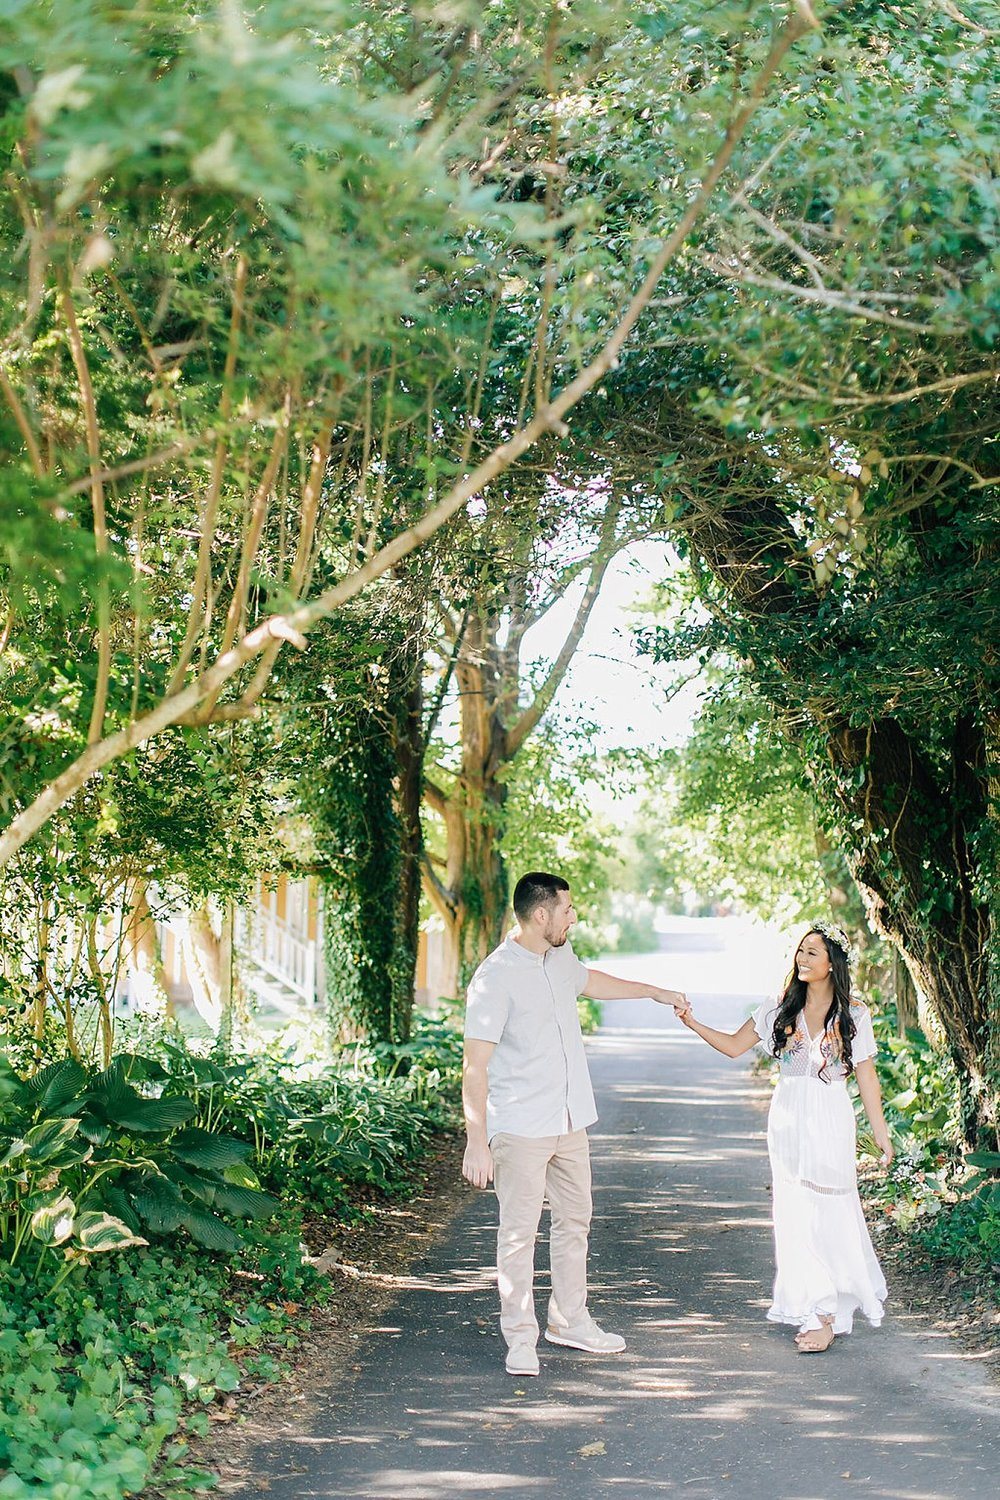 An Airy Summer Engagement Session at Willow Creek Winery in Cape May, NJ by Magdalena Studios_0007.jpg